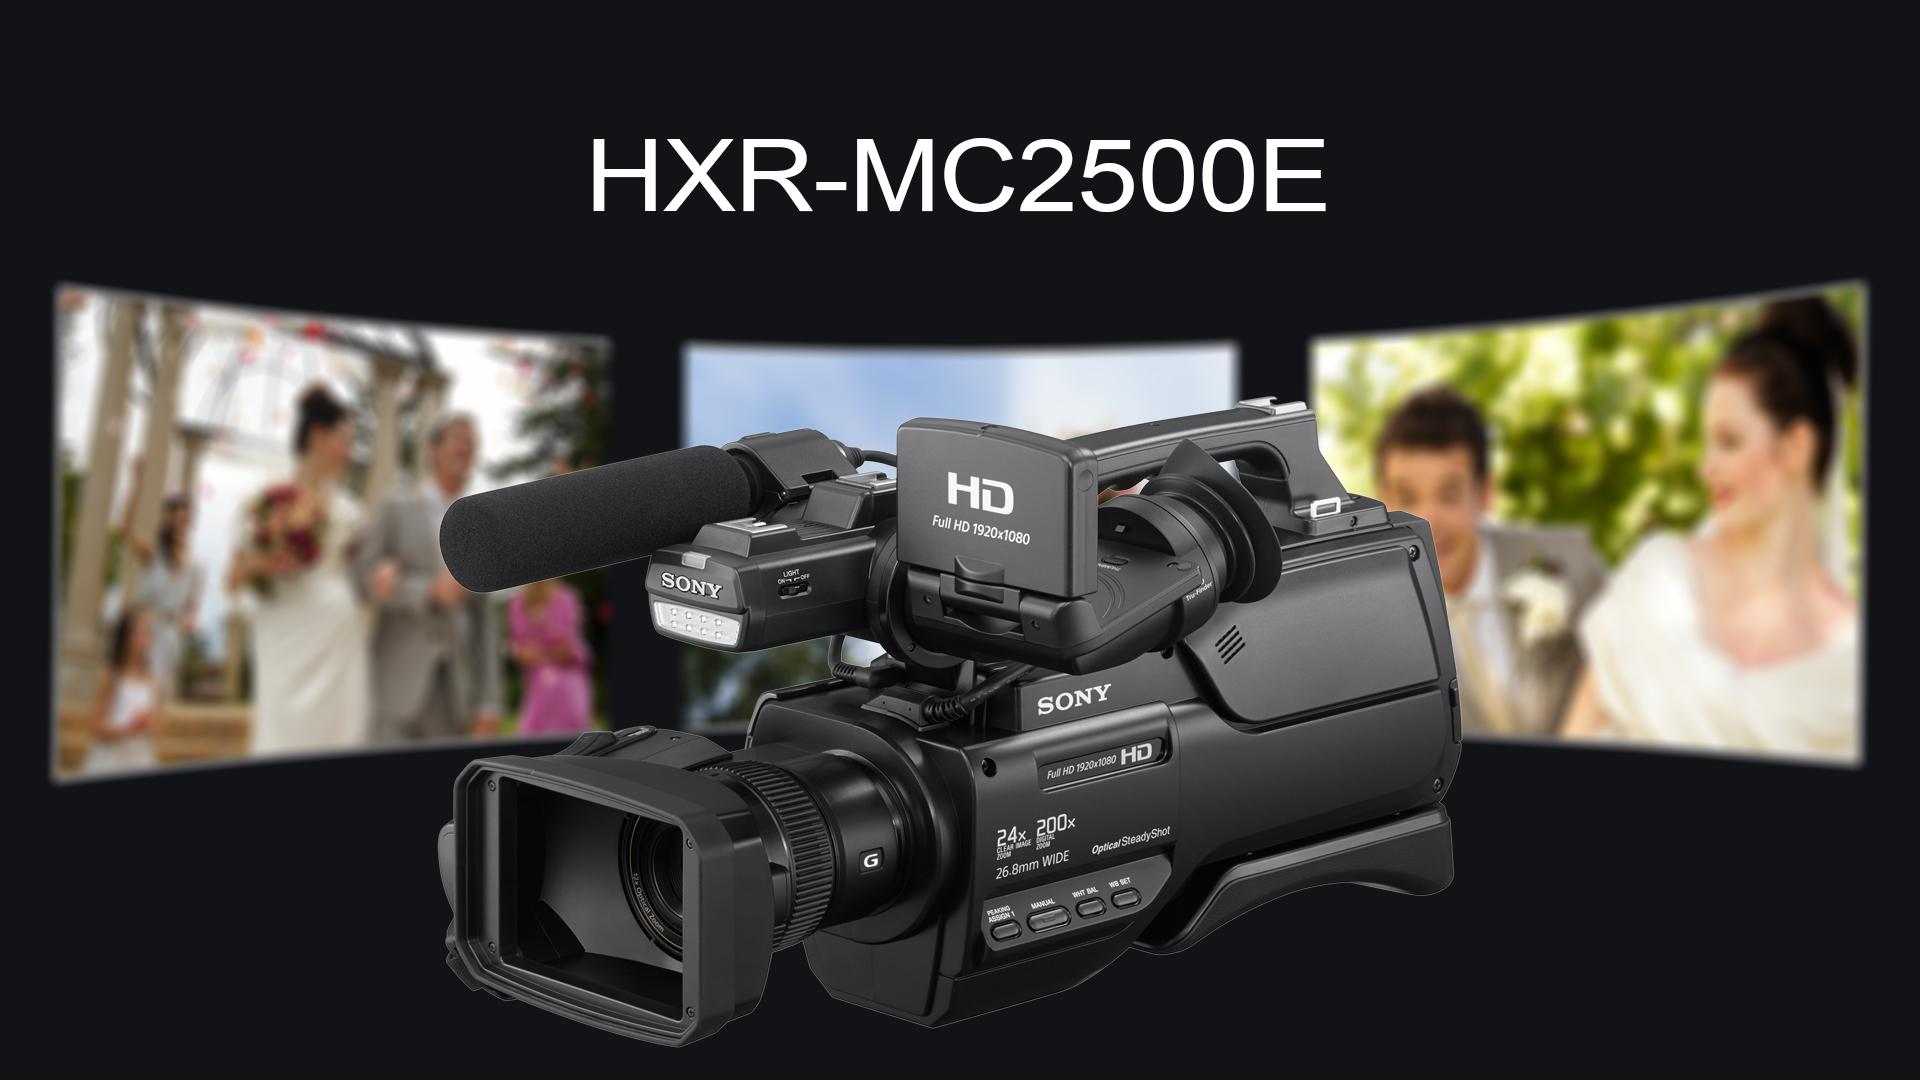 sony hxr mc2500e nxcam avchd schulter camcorder kamera. Black Bedroom Furniture Sets. Home Design Ideas